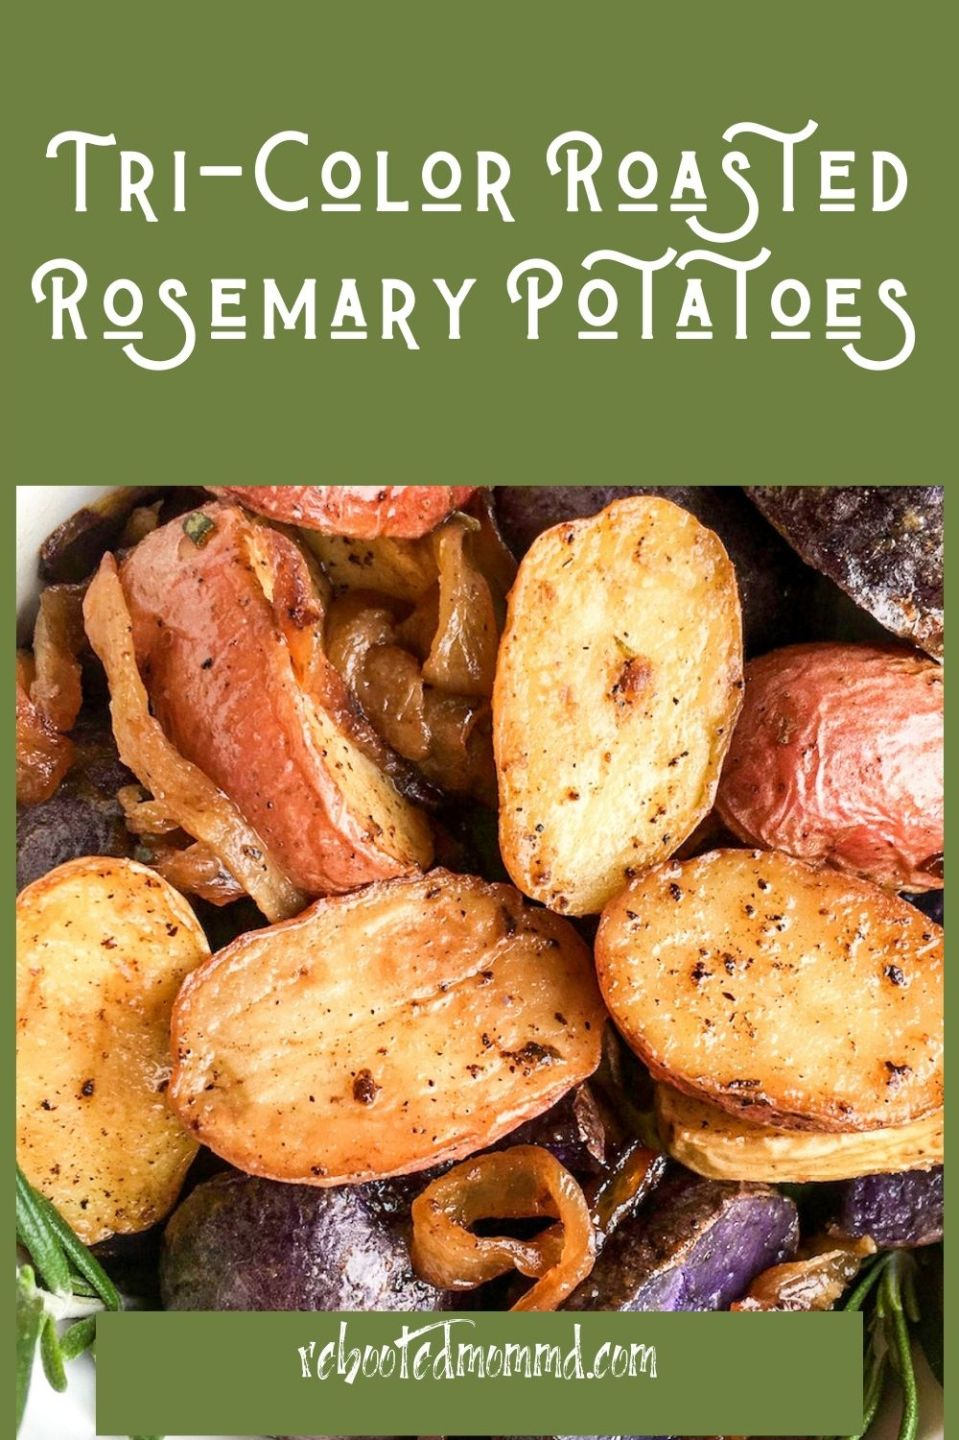 National Potato Day: Tri-Color Roasted Rosemary Potatoes